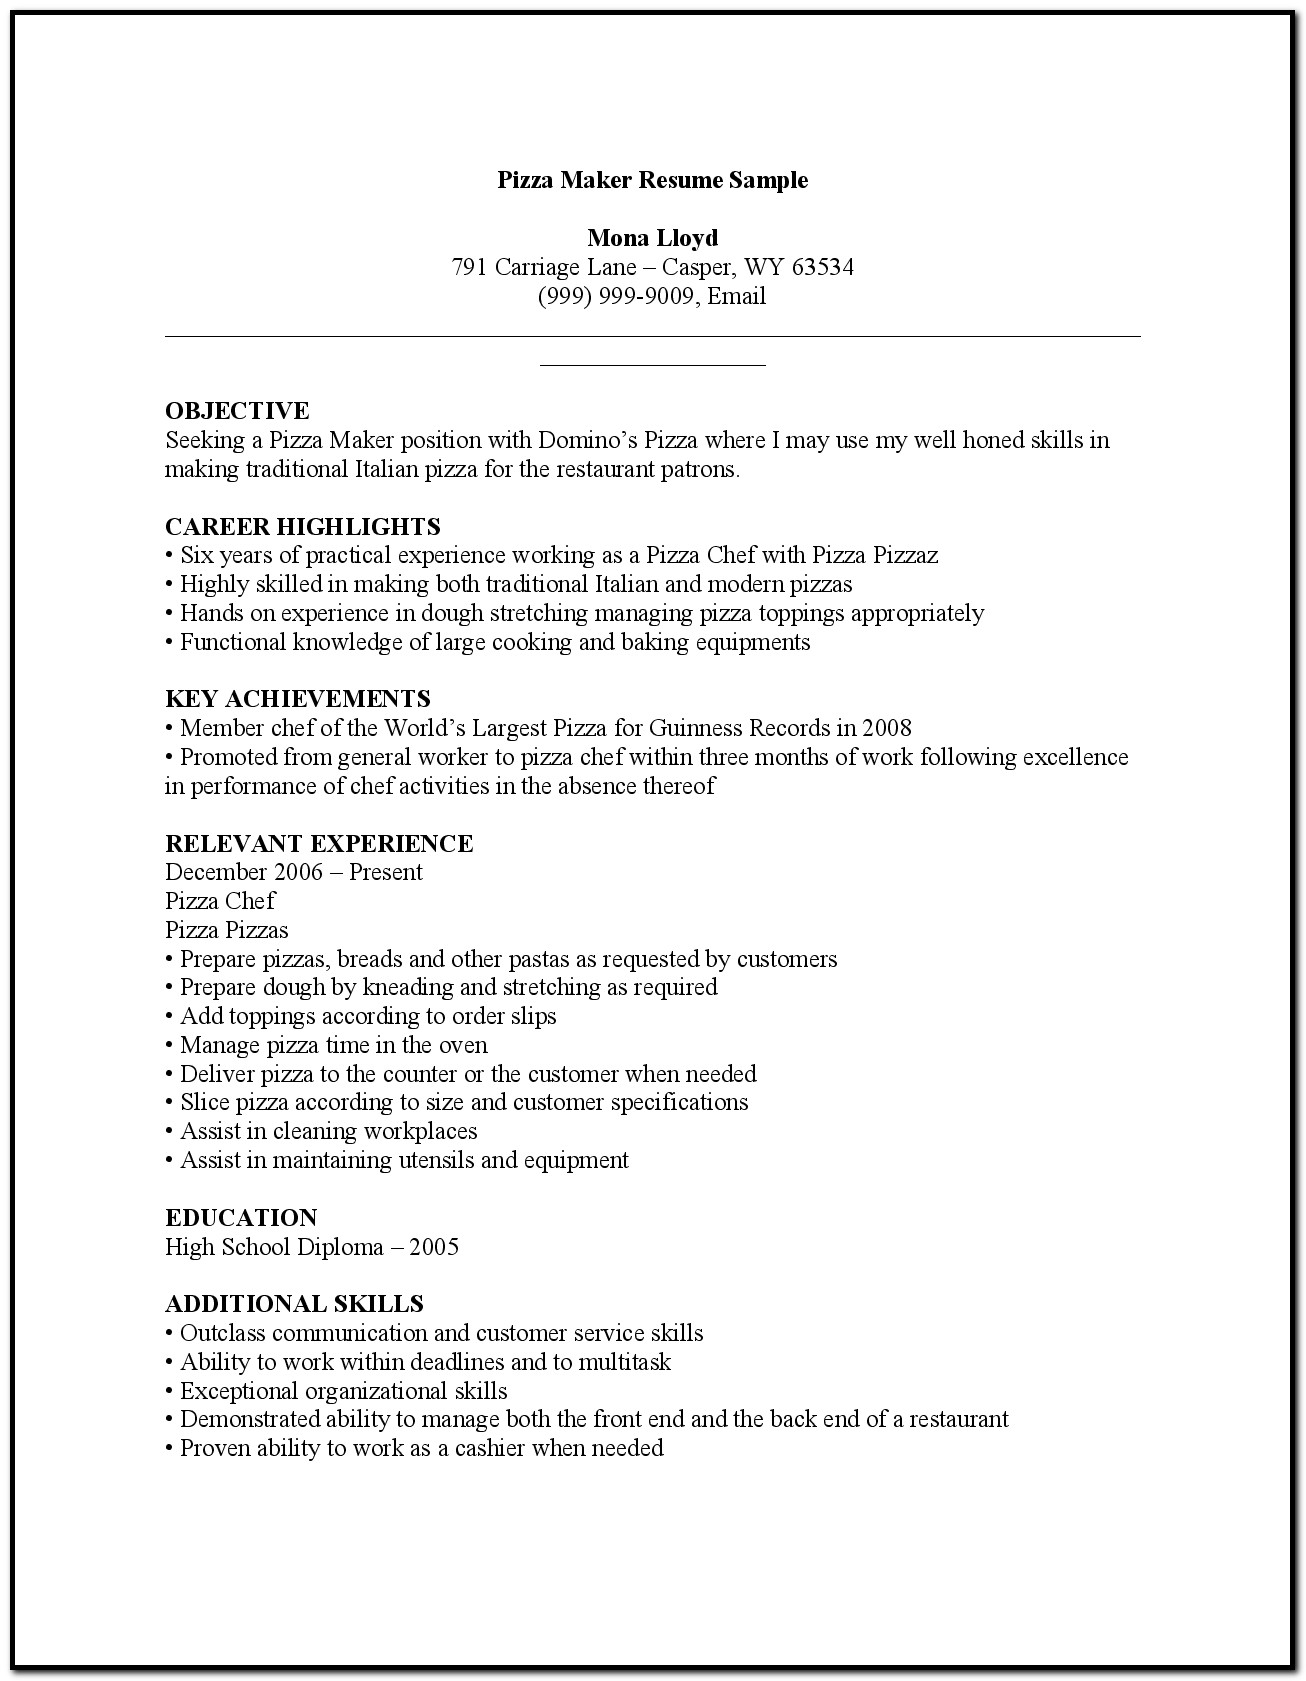 Free Online Resume And Cover Letter Builder